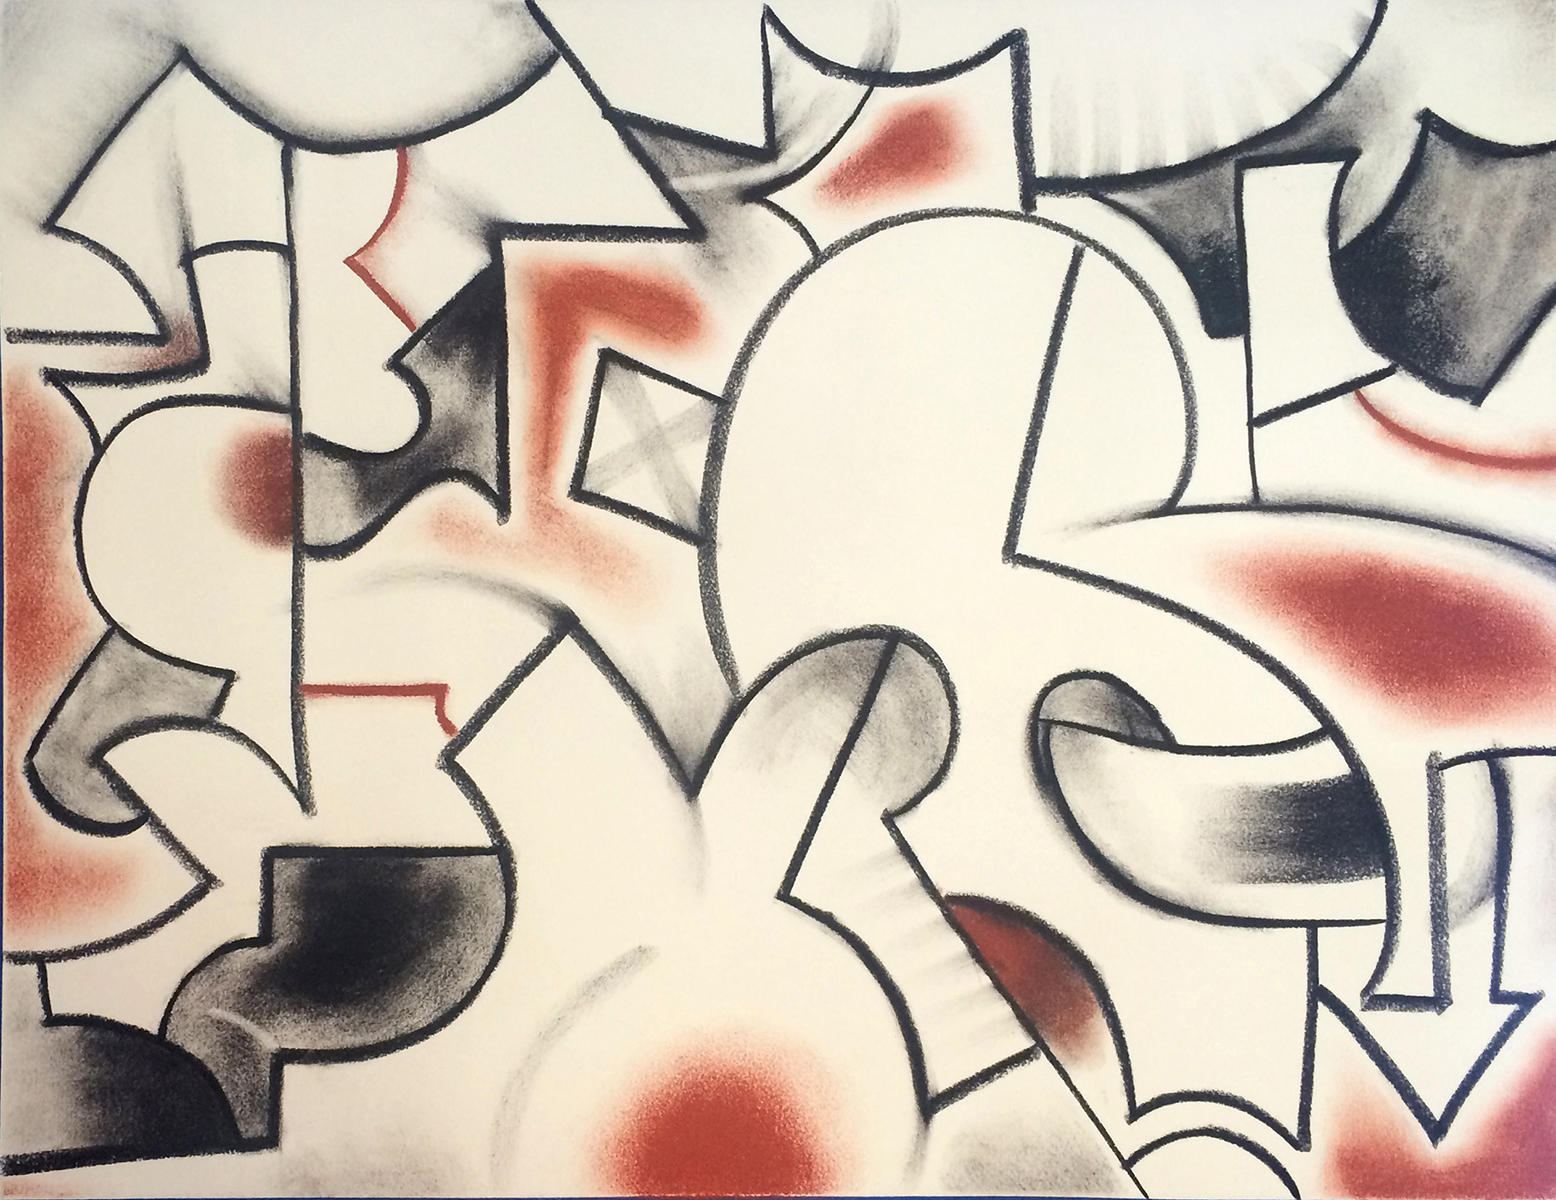 Charcoal, Pastel, paper, drawing, absraction, abstract